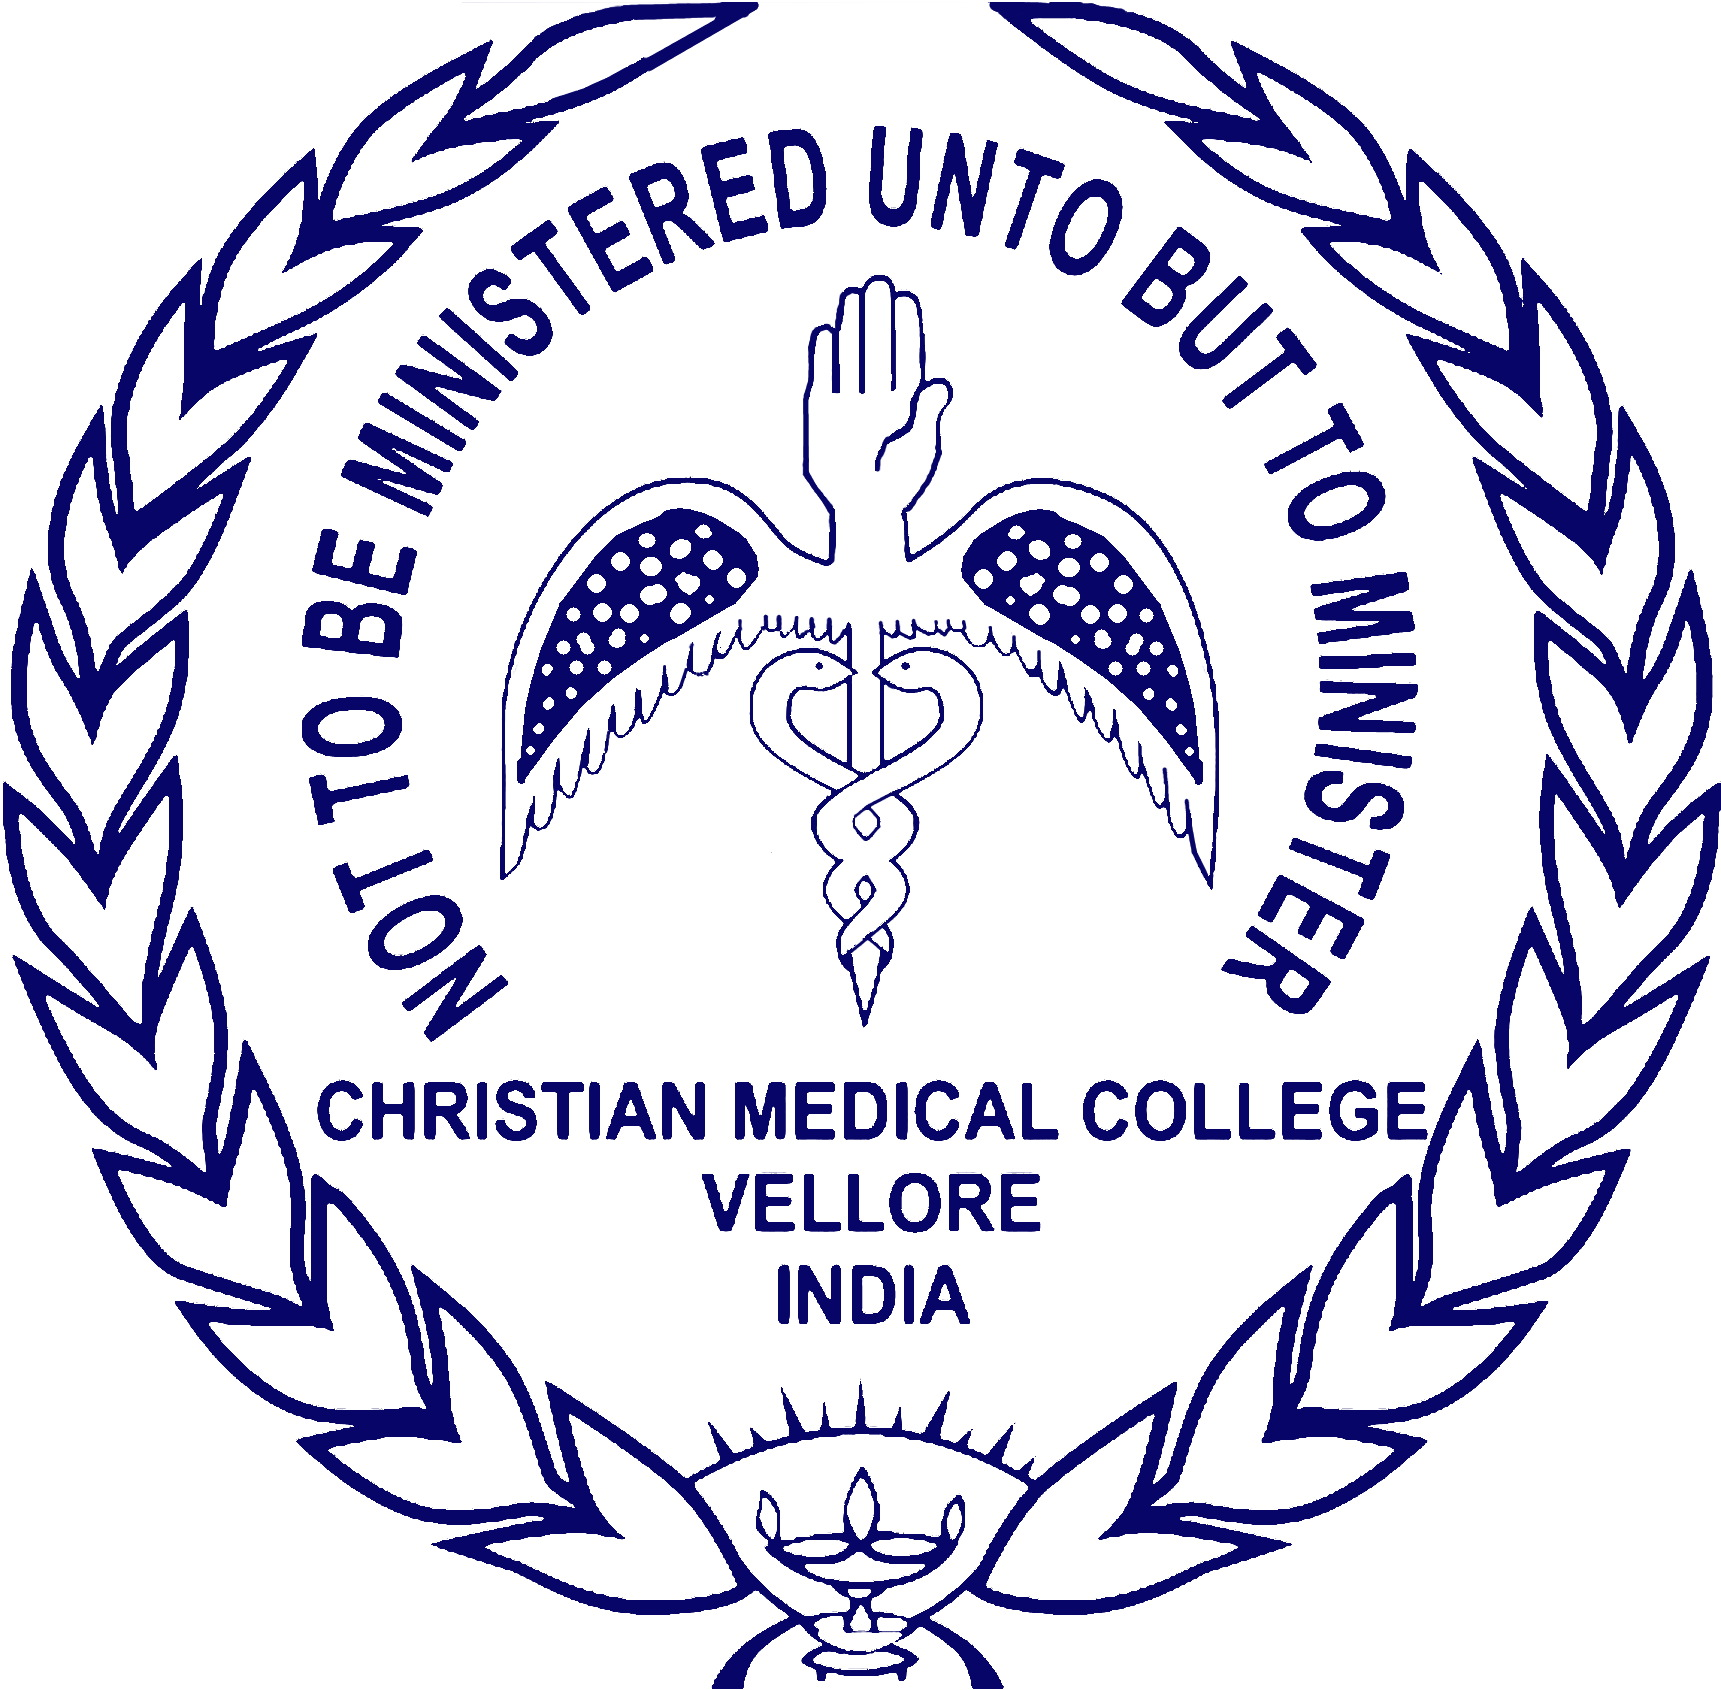 Christian Medical College (CMC), Vellore